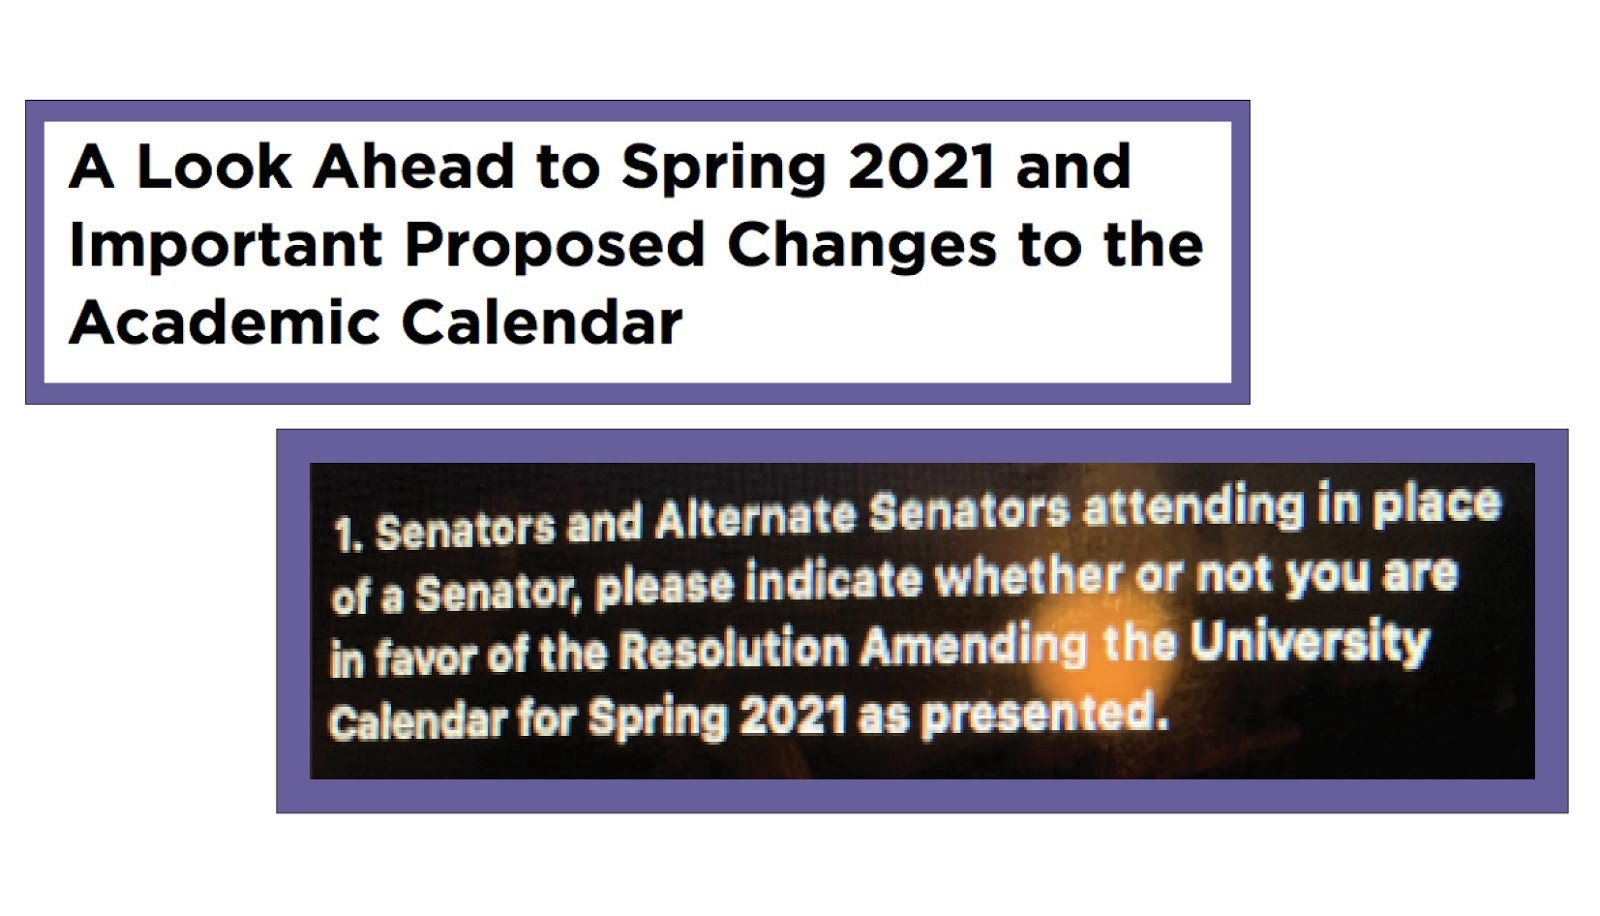 Nyu Calendar Spring 2021 University Senate Accepts Proposed Changes to the Spring 2021